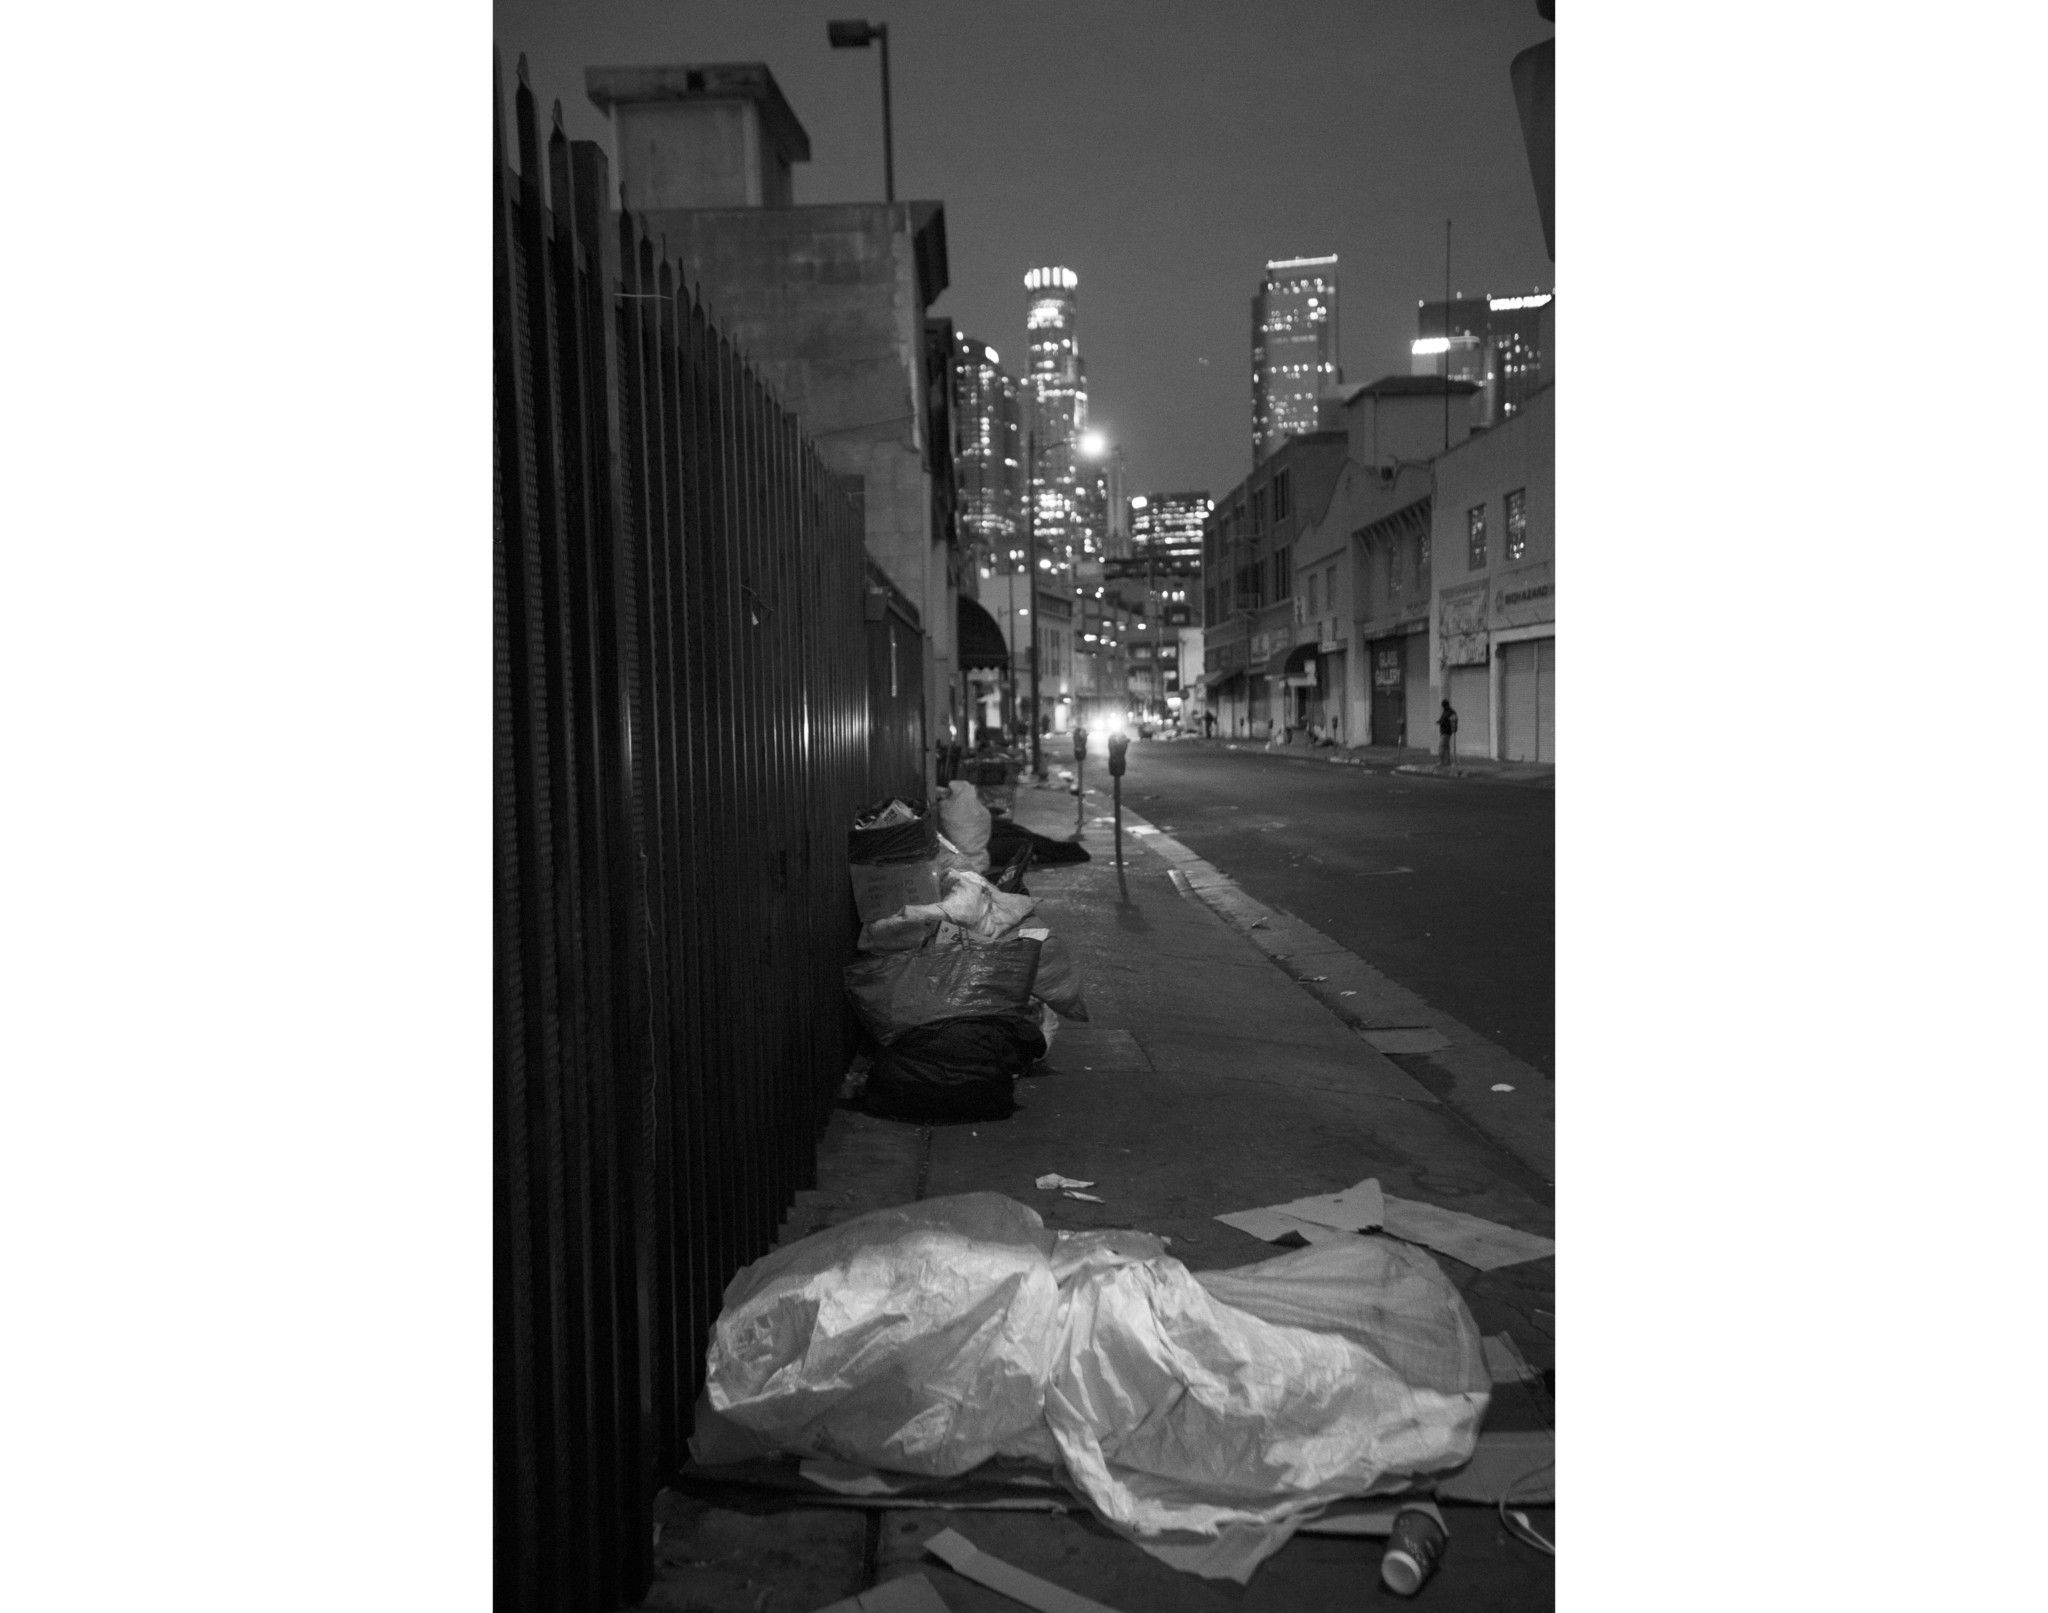 LOS ANGELES, CA NOVEMBER 15, 2017: At dawn people are sleeping on the sidewalk wrapped in tarps and